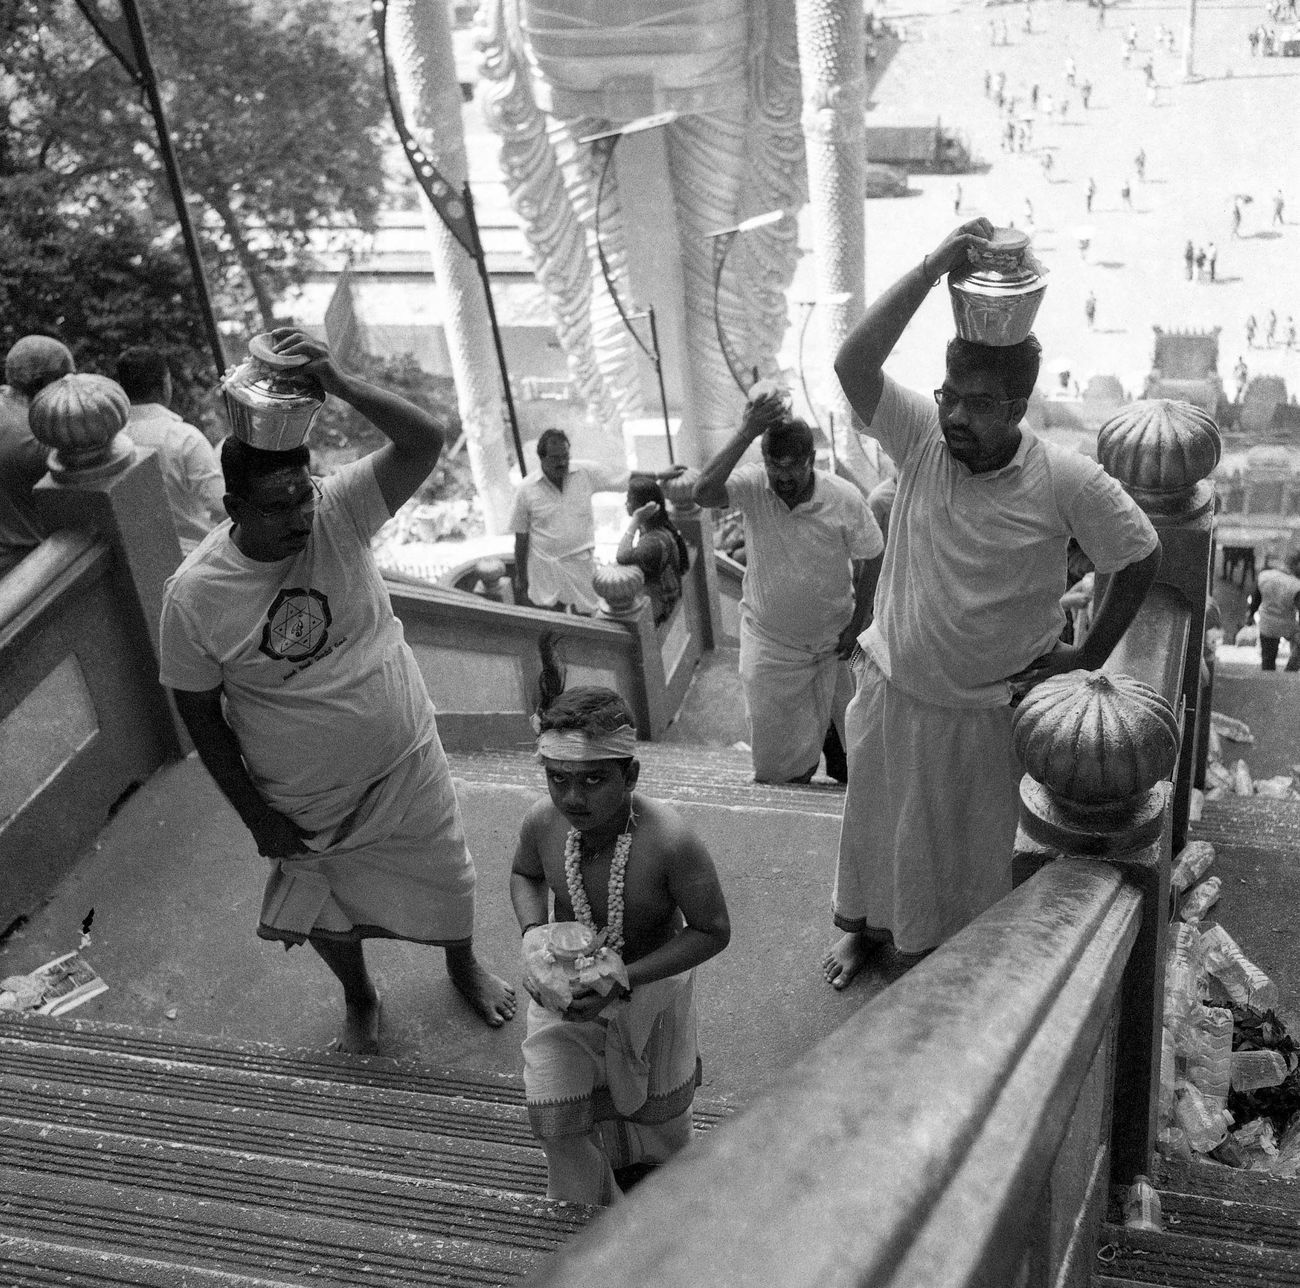 Batu Caves on film 001. Taken with the Rolleiflex Real People People Outdoors EyeEmMalaysia People Of EyeEm Black And White Filmisnotdead Rolleiflex Blackandwhite Black And White Photography Filmphotography Believeinfilm Streetphotography Street Photography Streetphoto_bw Thaipusam Thaipusam 2017 Ishootfilm The Street Photographer - 2017 EyeEm Awards